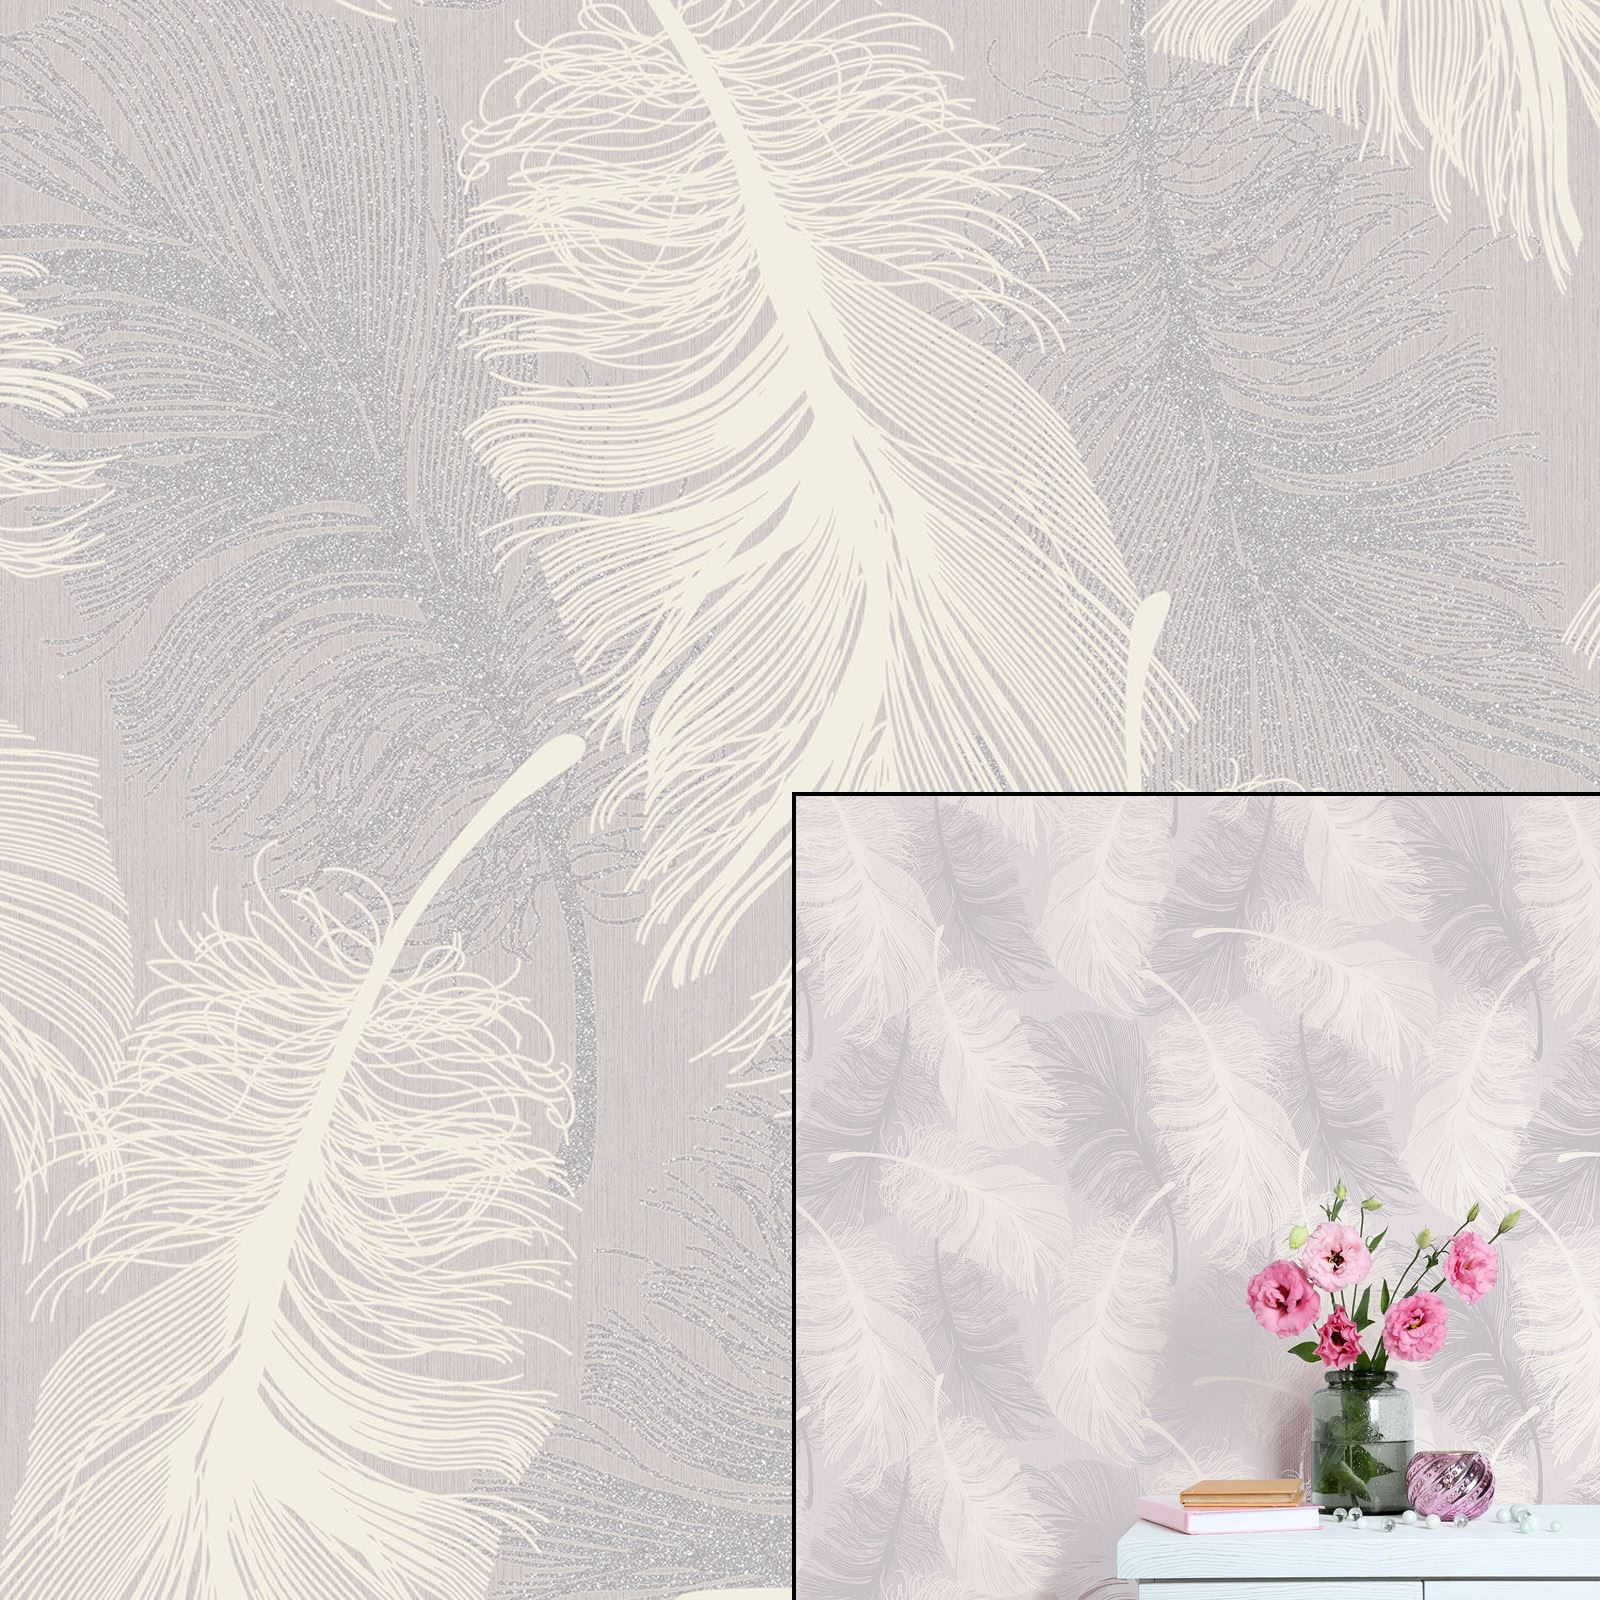 Coloroll Feather Lilac White Mauve Silver Glitter Feature HD Wallpapers Download Free Images Wallpaper [1000image.com]